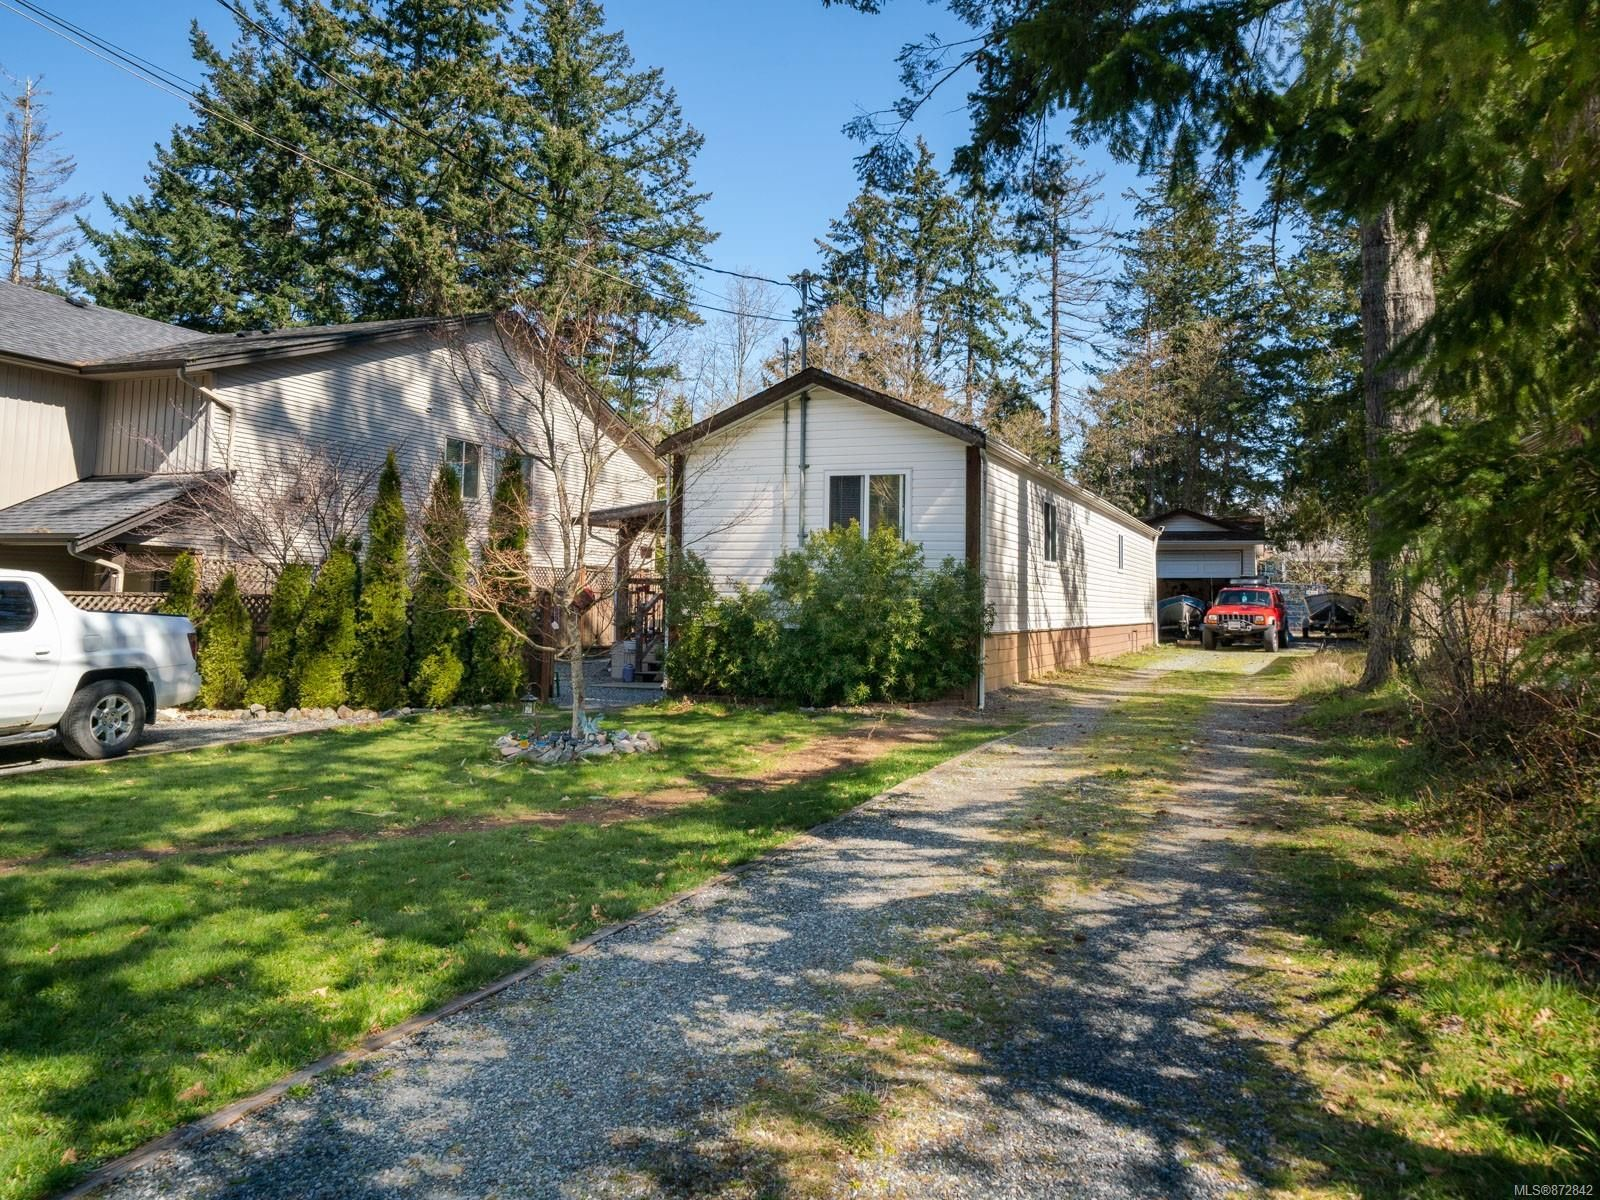 Main Photo: 5244 Sherbourne Dr in : Na Pleasant Valley House for sale (Nanaimo)  : MLS®# 872842